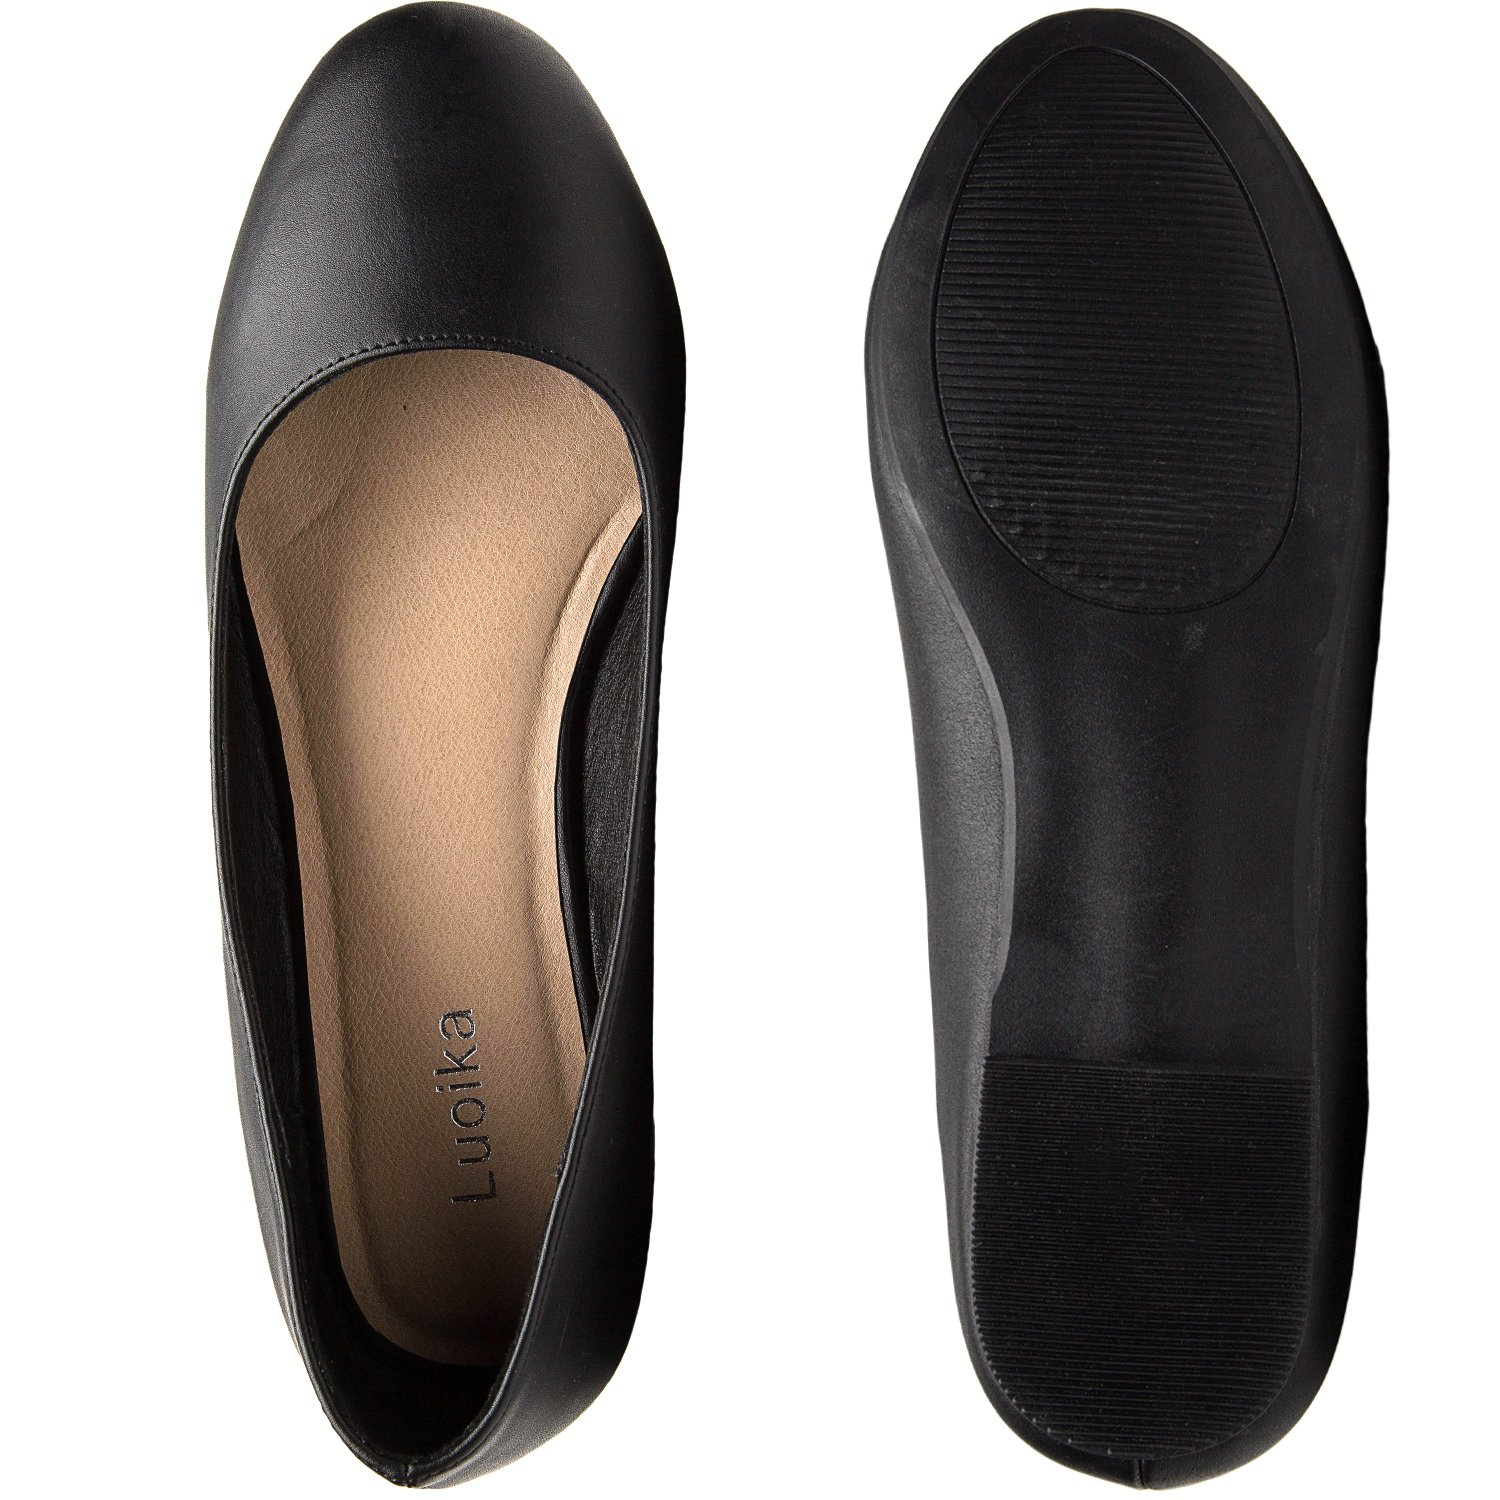 Luoika Women's Wide Width Flat Shoes - Comfortable Slip On Round Toe Ballet Flats. (180110 Black PU,9WW) by Luoika (Image #5)